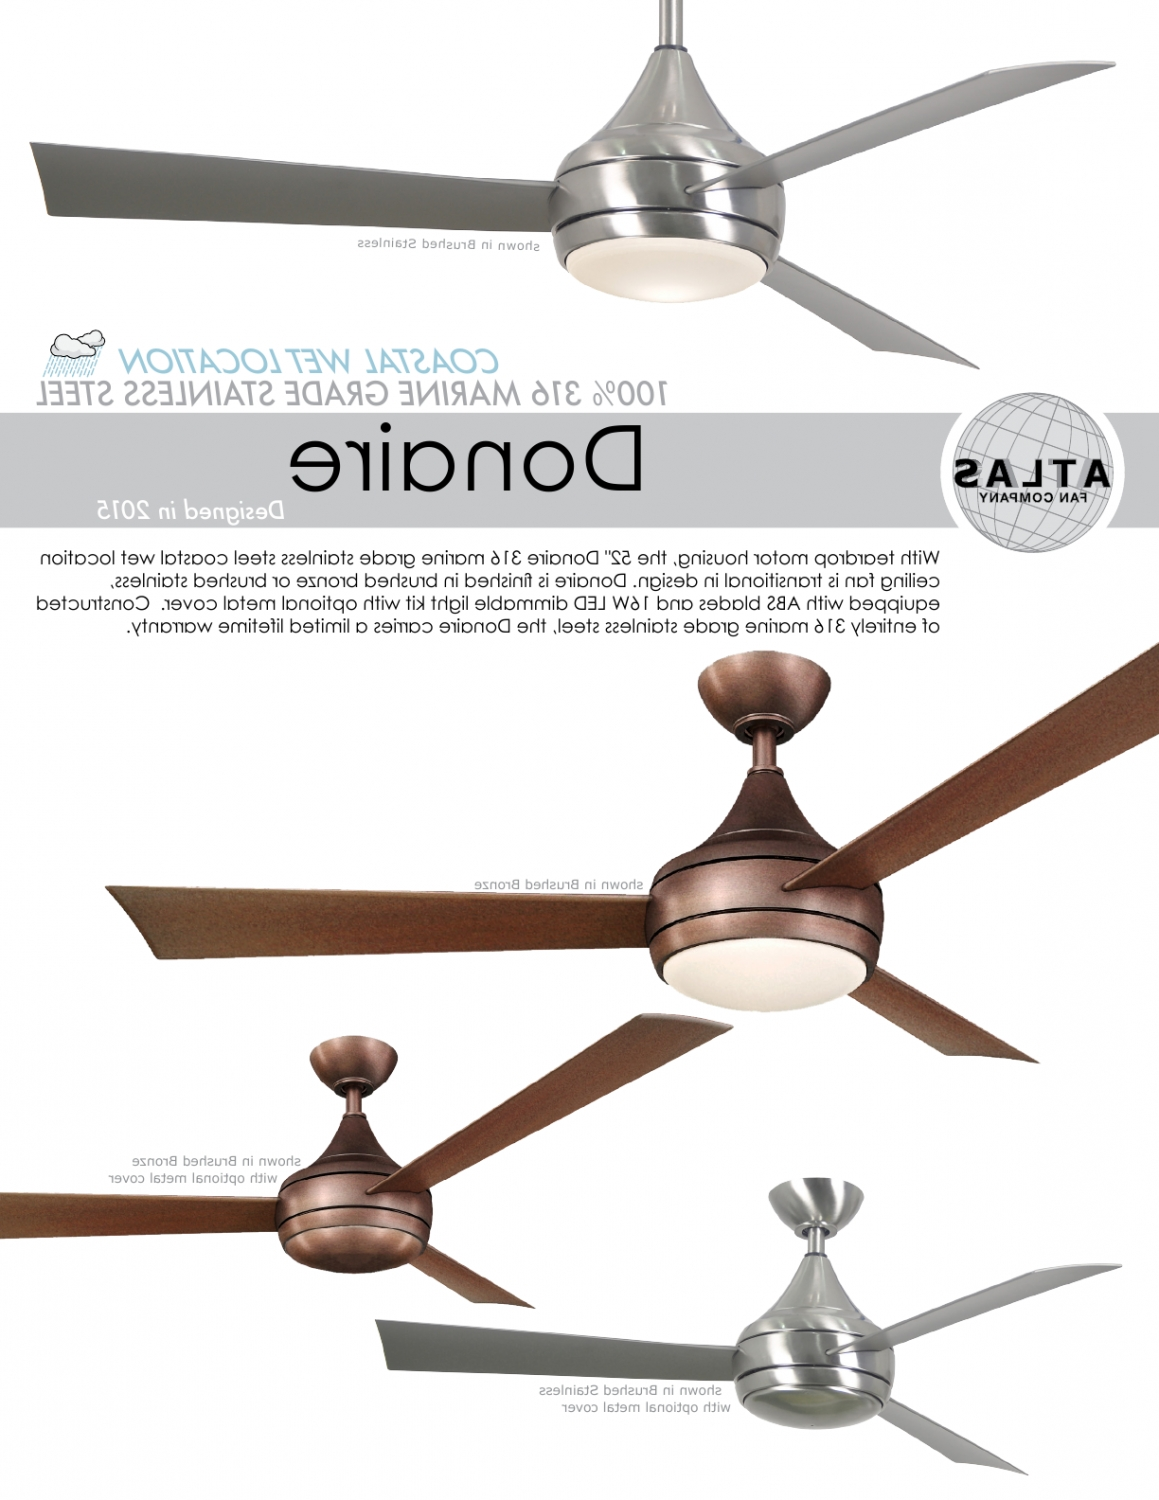 Stainless Steel Outdoor Ceiling Fans With Light In Most Recently Released Donaire Ceiling Fan For Balcony Terrace Verandah Outdoor Spaces (View 18 of 20)